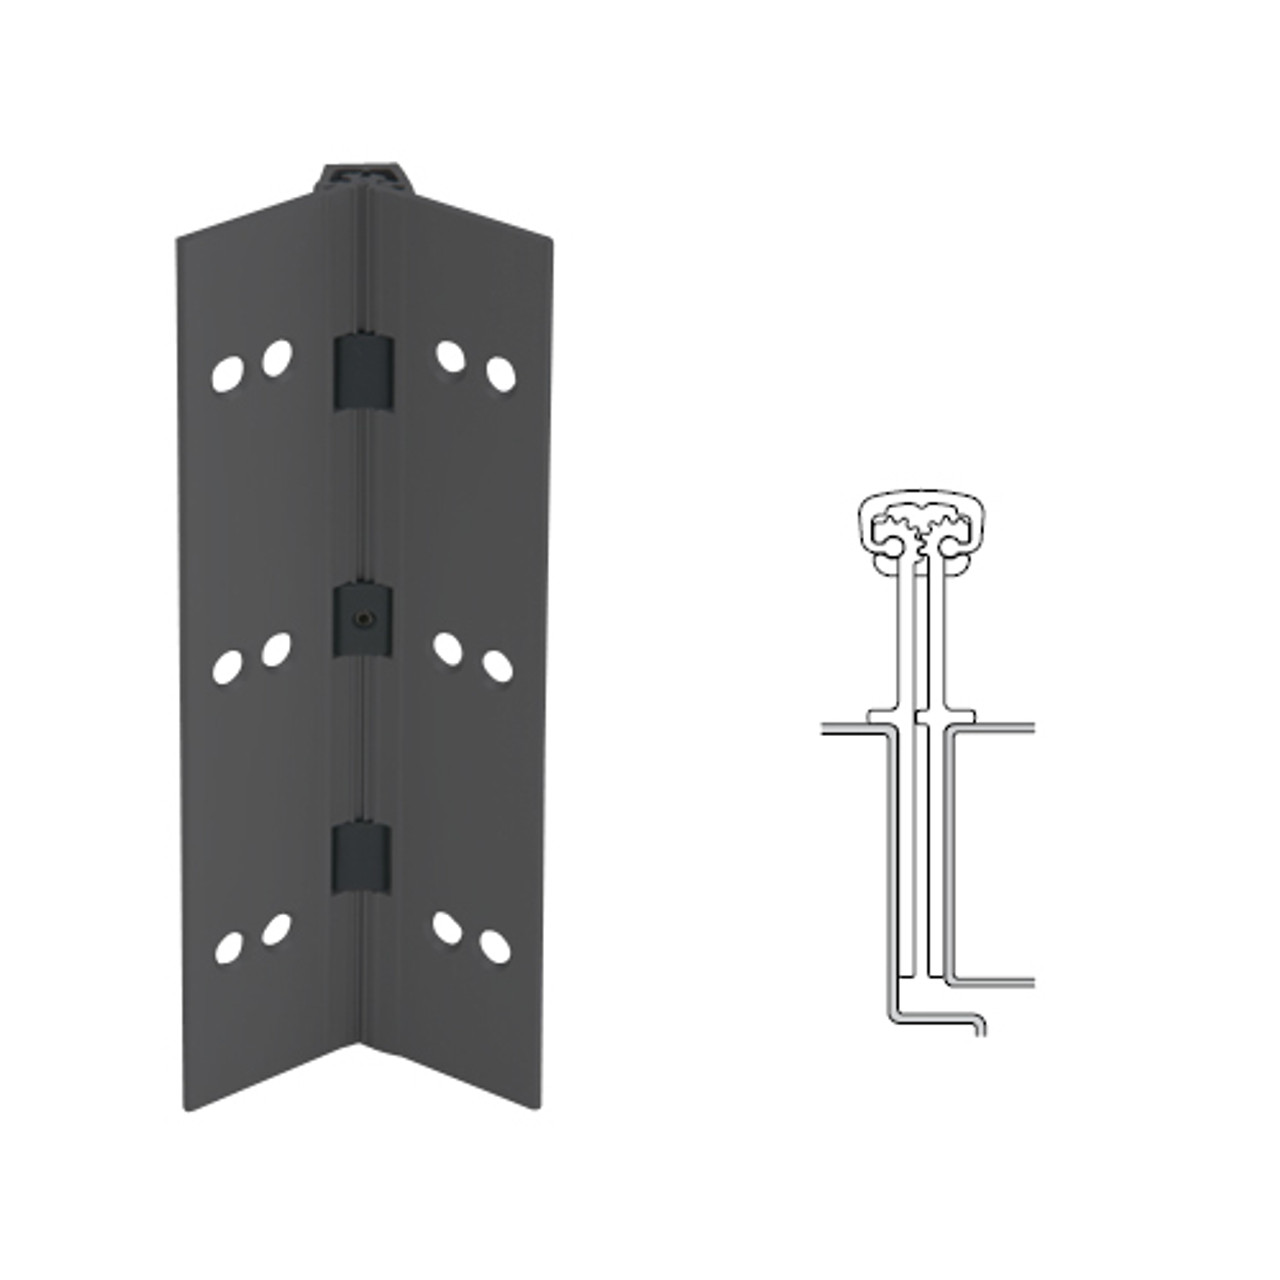 040XY-315AN-85-TF IVES Full Mortise Continuous Geared Hinges with Thread Forming Screws in Anodized Black